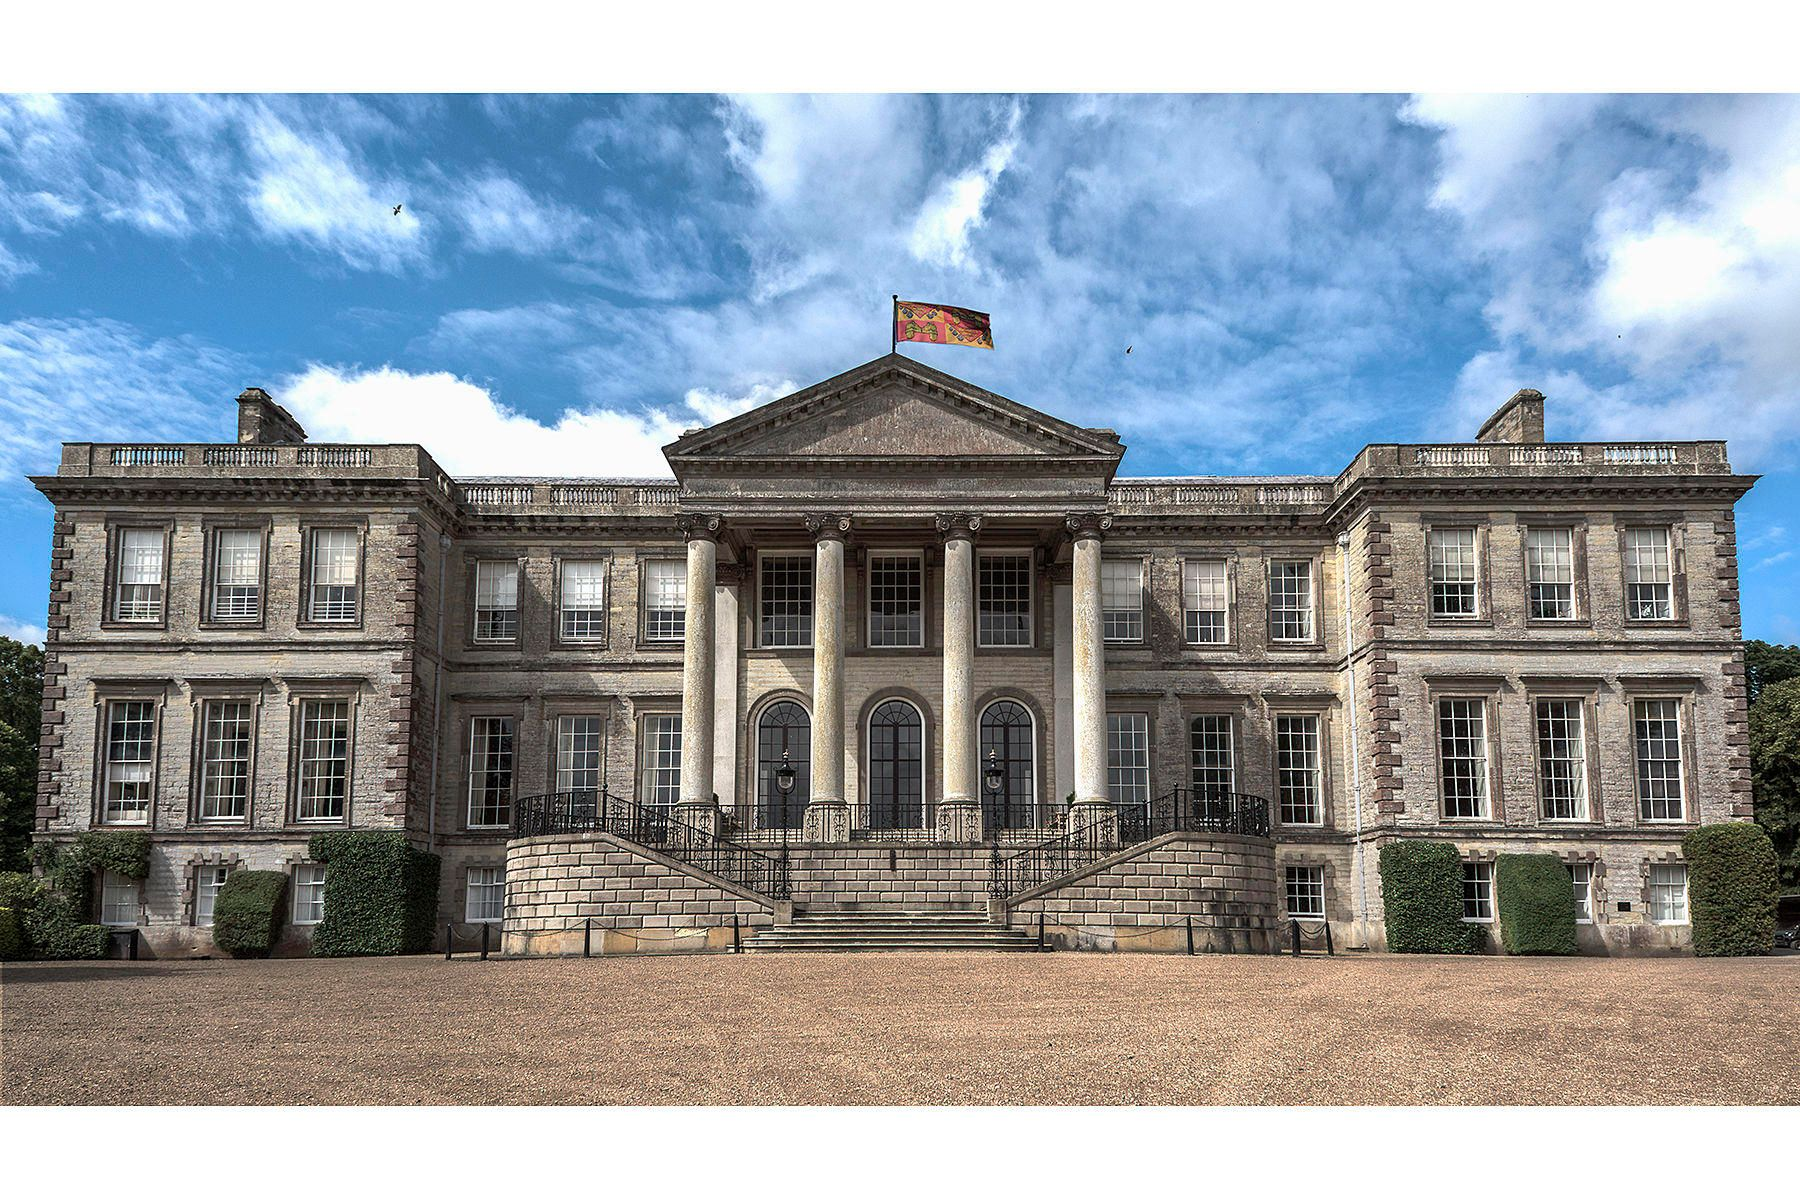 Ragley Hall - The Palladian House designed by Robert Hook is the Home of Lord and Lady Hertford . A major tourist attraction and venue for great events throughout the year.